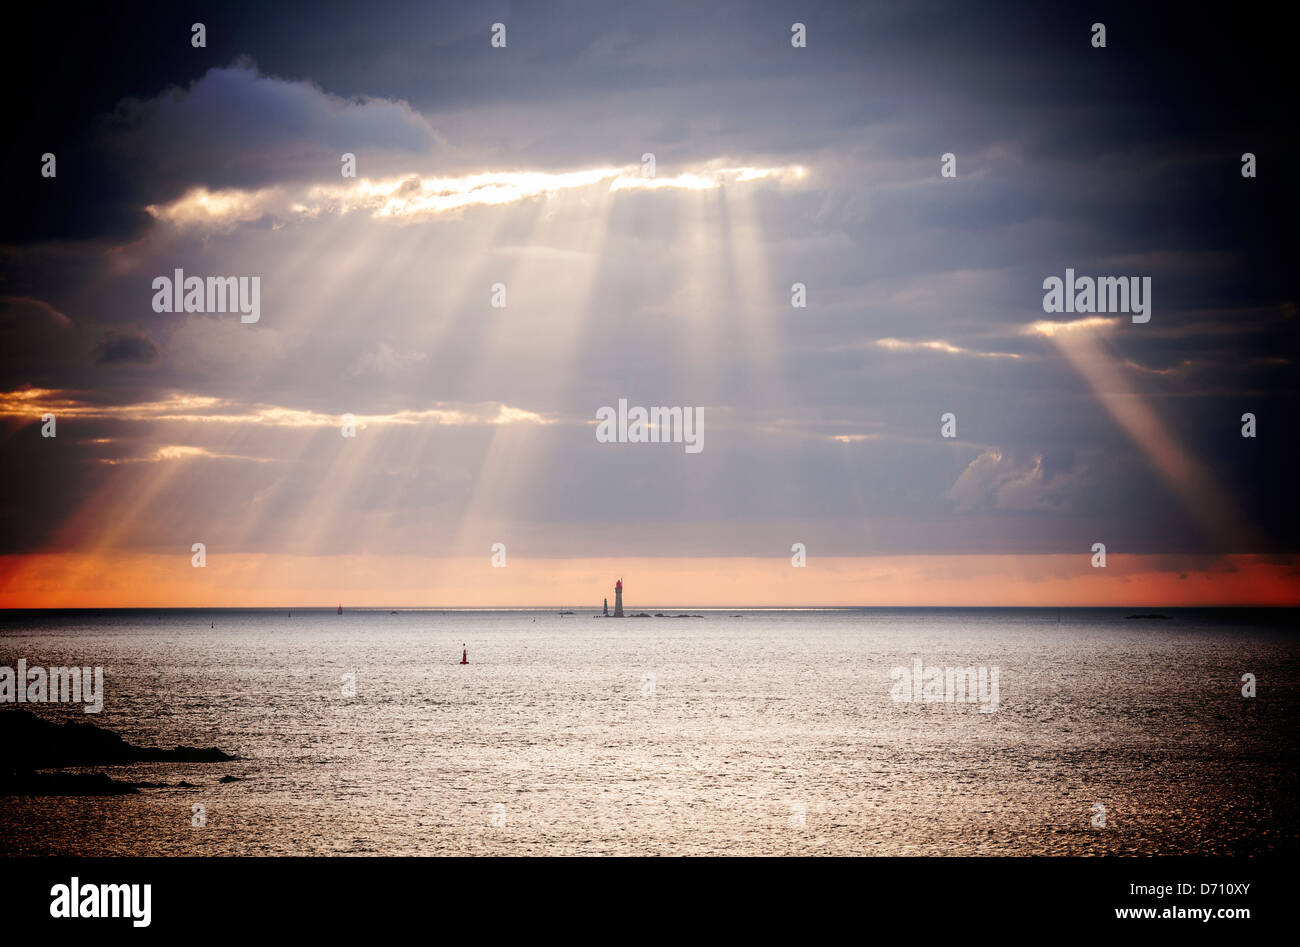 St-Malo Brittany France Seascape - seascape off the coast from St-Malo with rays, beams, or Godlight. - Stock Image